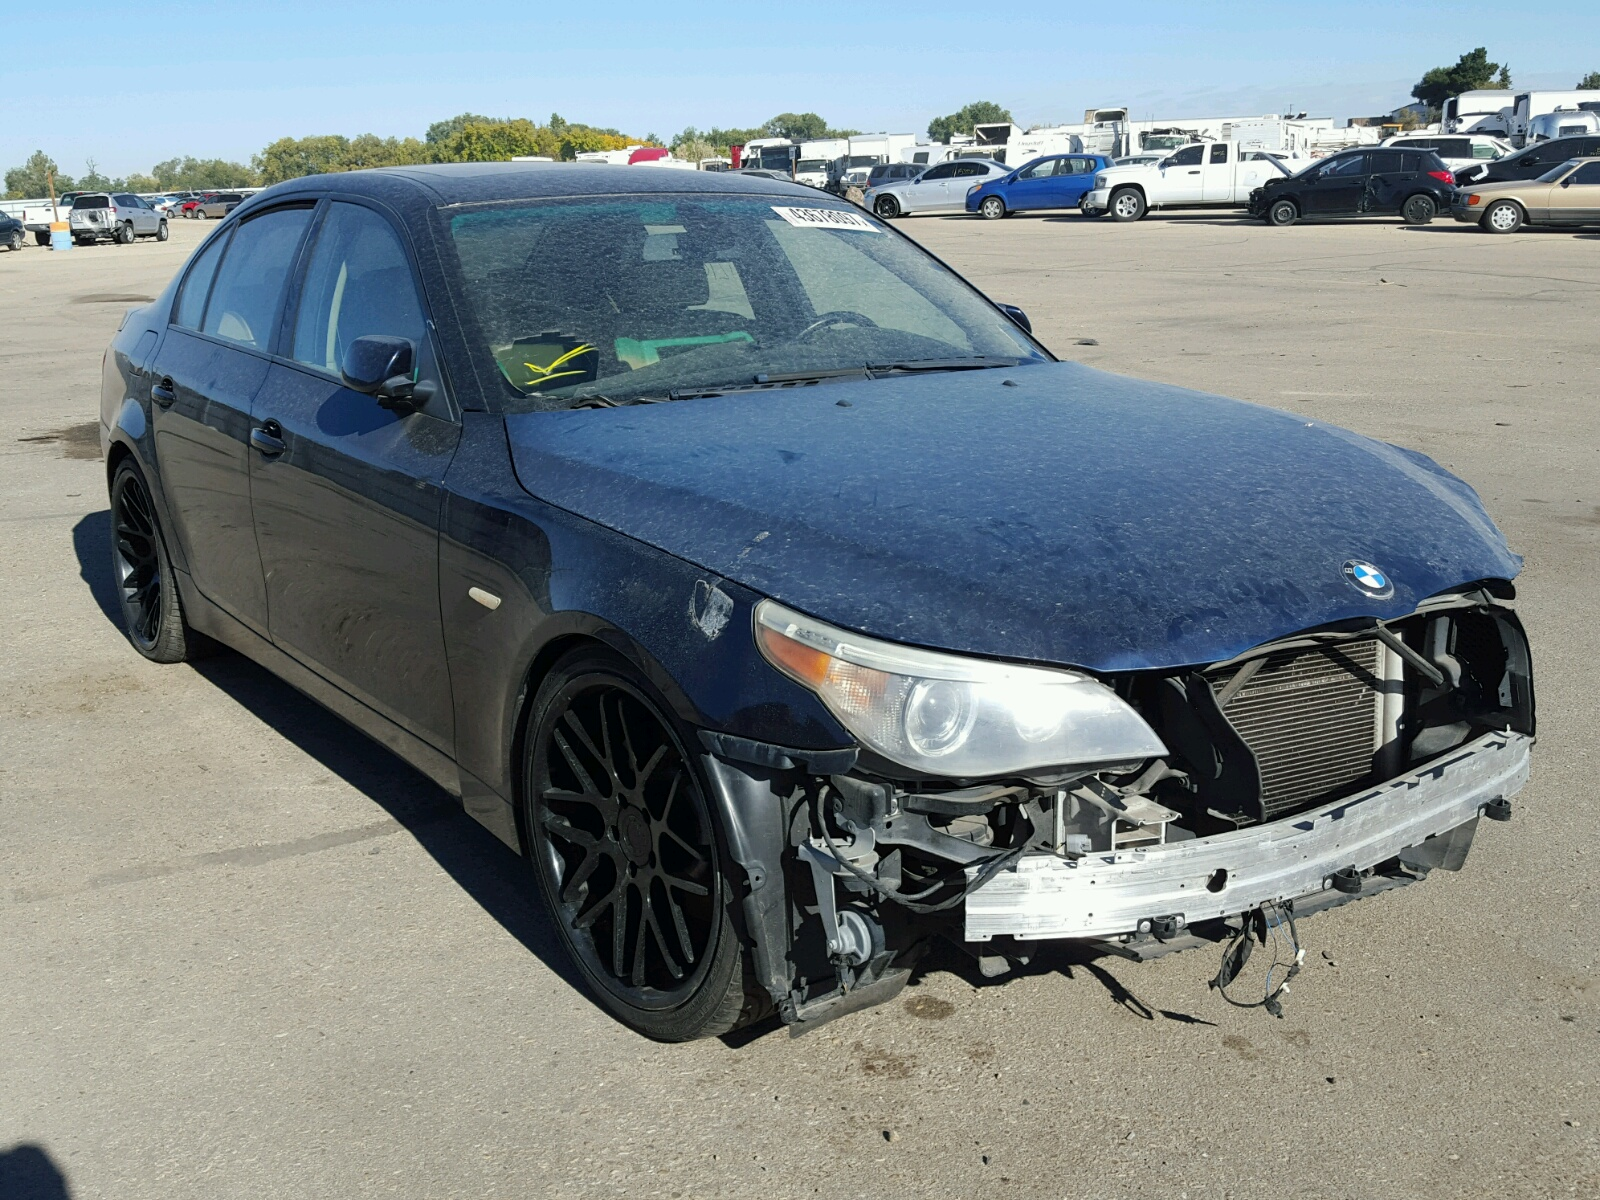 Auto Auction Ended On VIN WBAPHGBNM BMW I In FL - 2005 bmw 328i